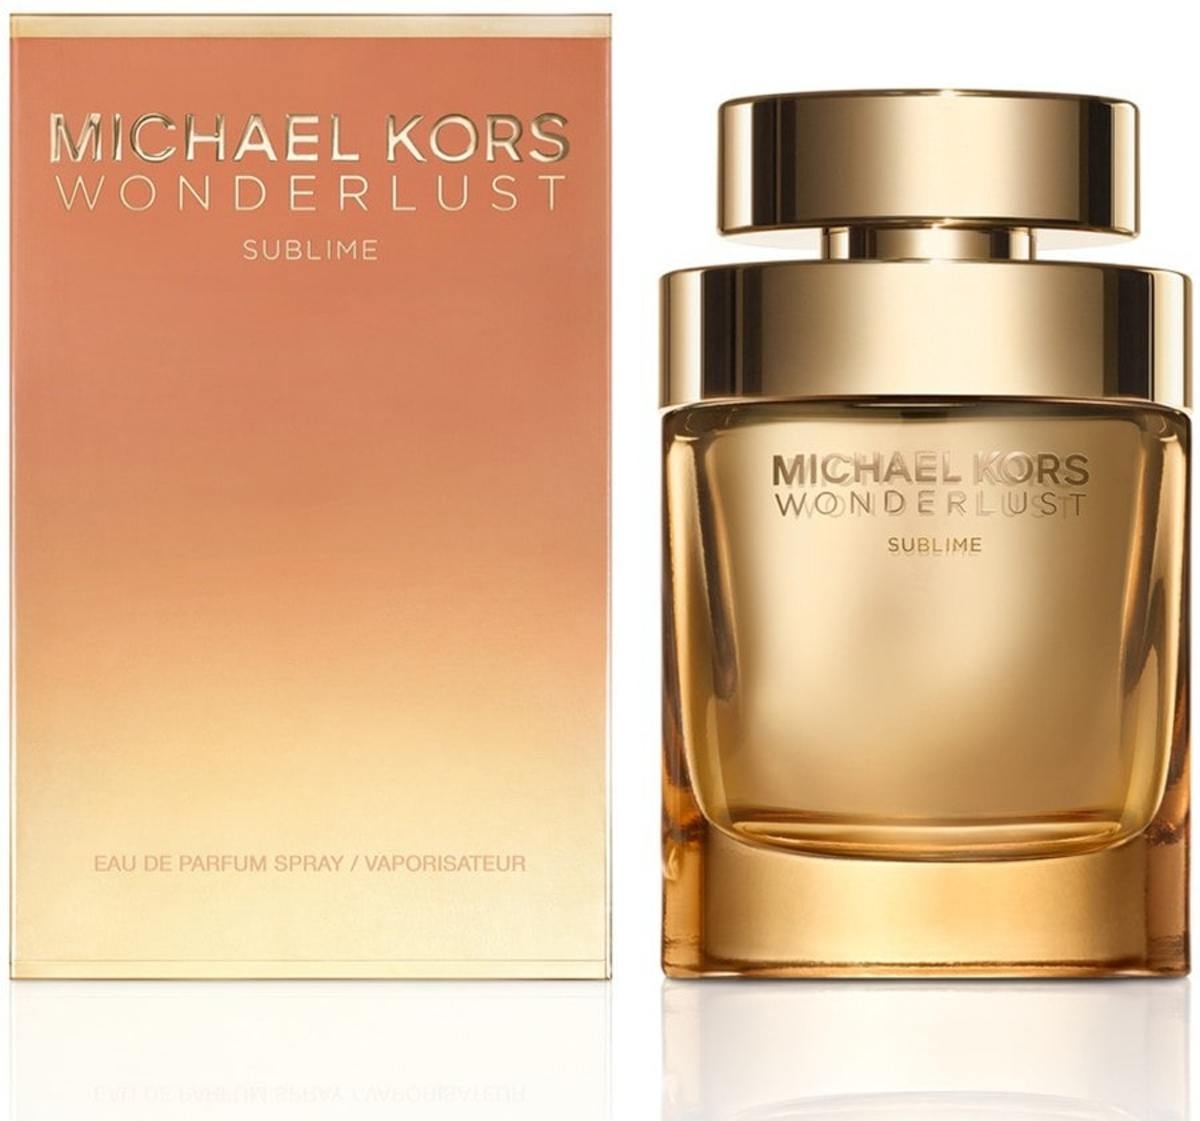 Michael Kors WONDERLUST SUBLIME edp spray 100 ml